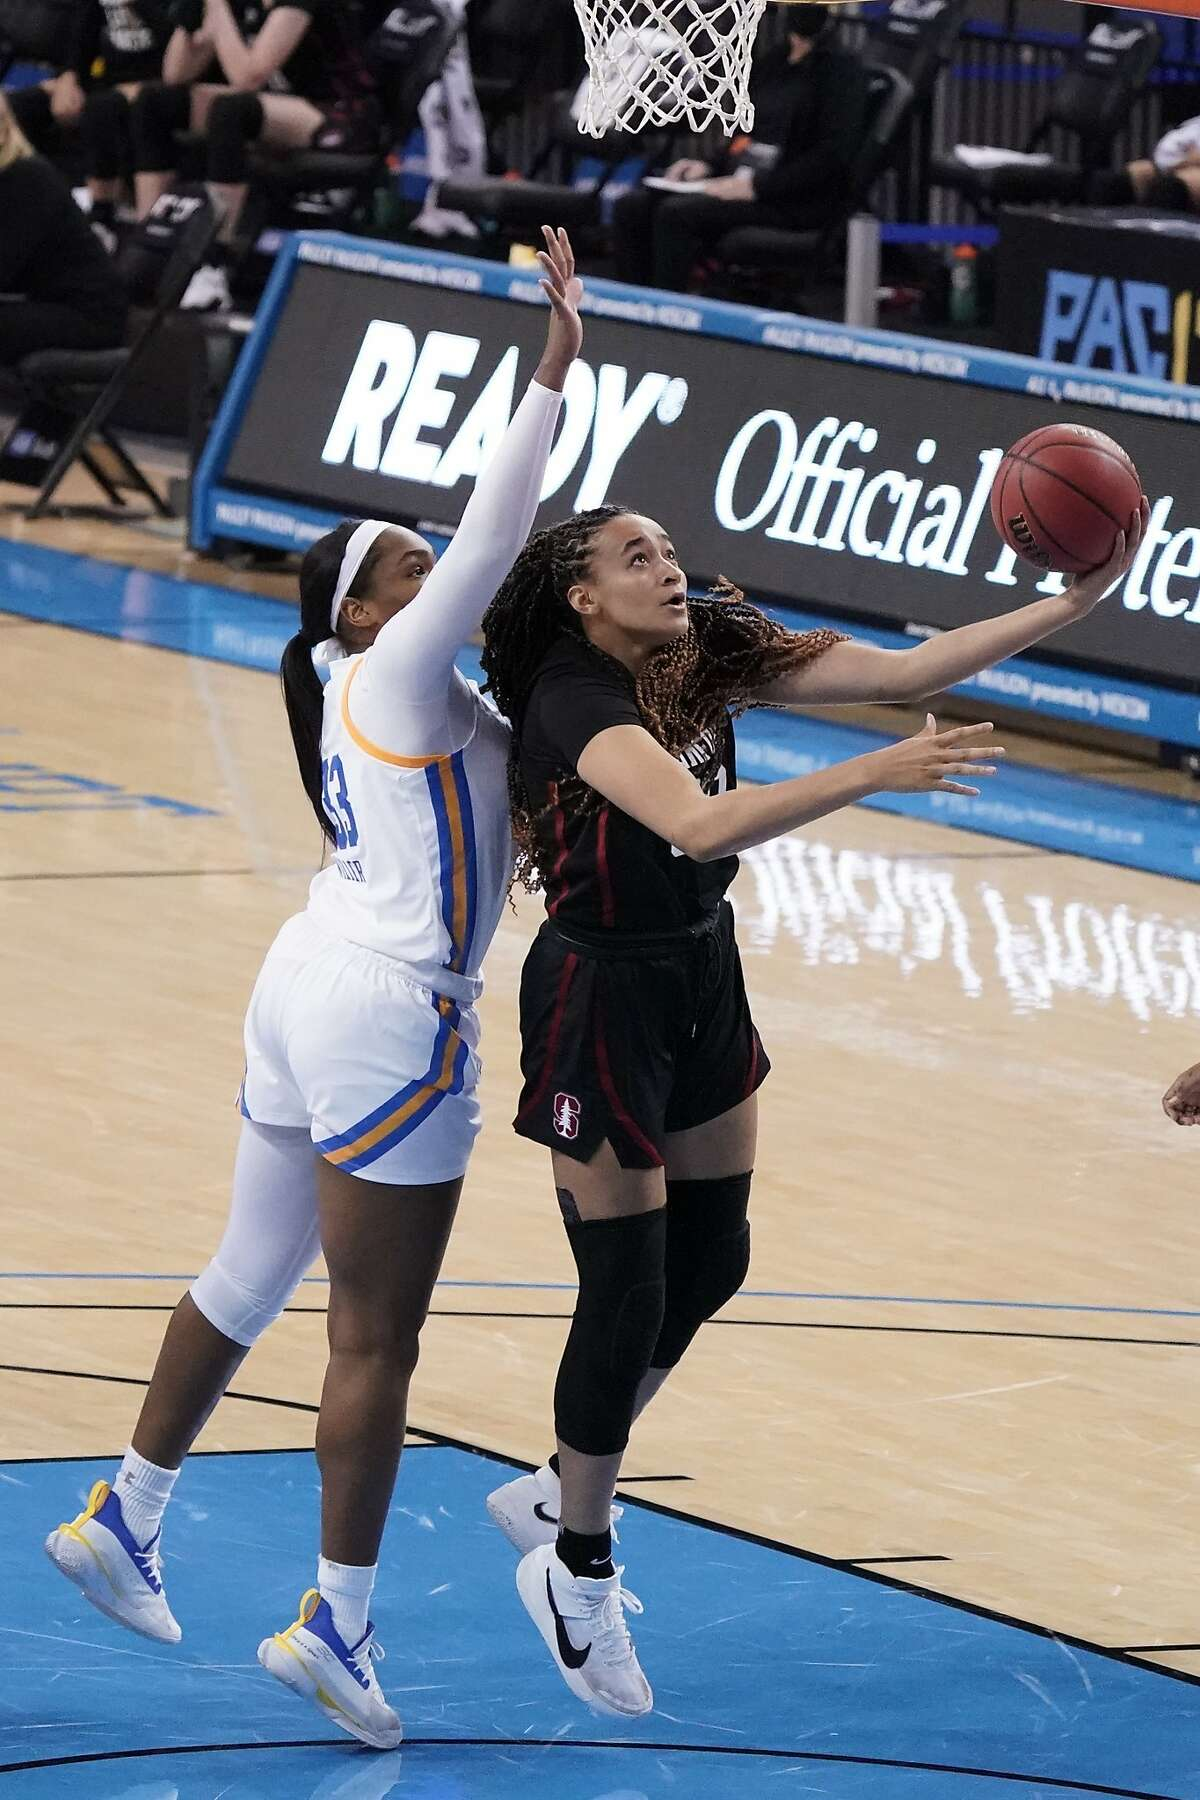 Stanford guard Haley Jones, right, shoots past UCLA forward Lauryn Miller during the first half of an NCAA college basketball game Monday, Dec. 21, 2020, in Los Angeles. (AP Photo/Marcio Jose Sanchez)